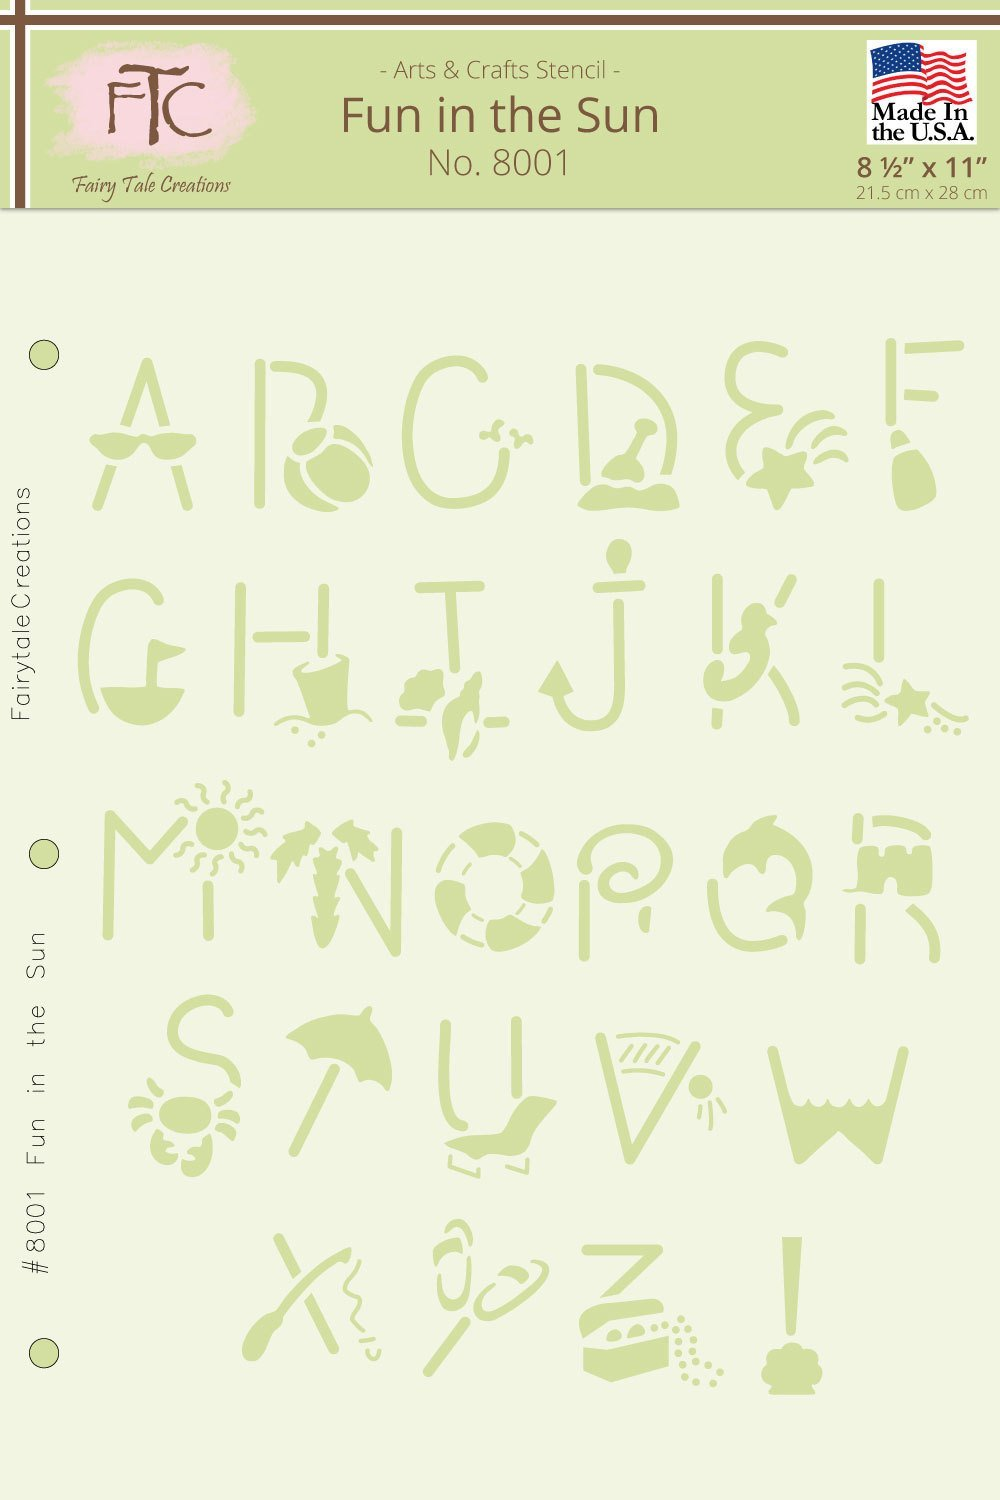 Fairytale Creations Fun in the Sun Alphabet Stencil, 8.5 L x 11 H 8.5 L x 11 H 8001